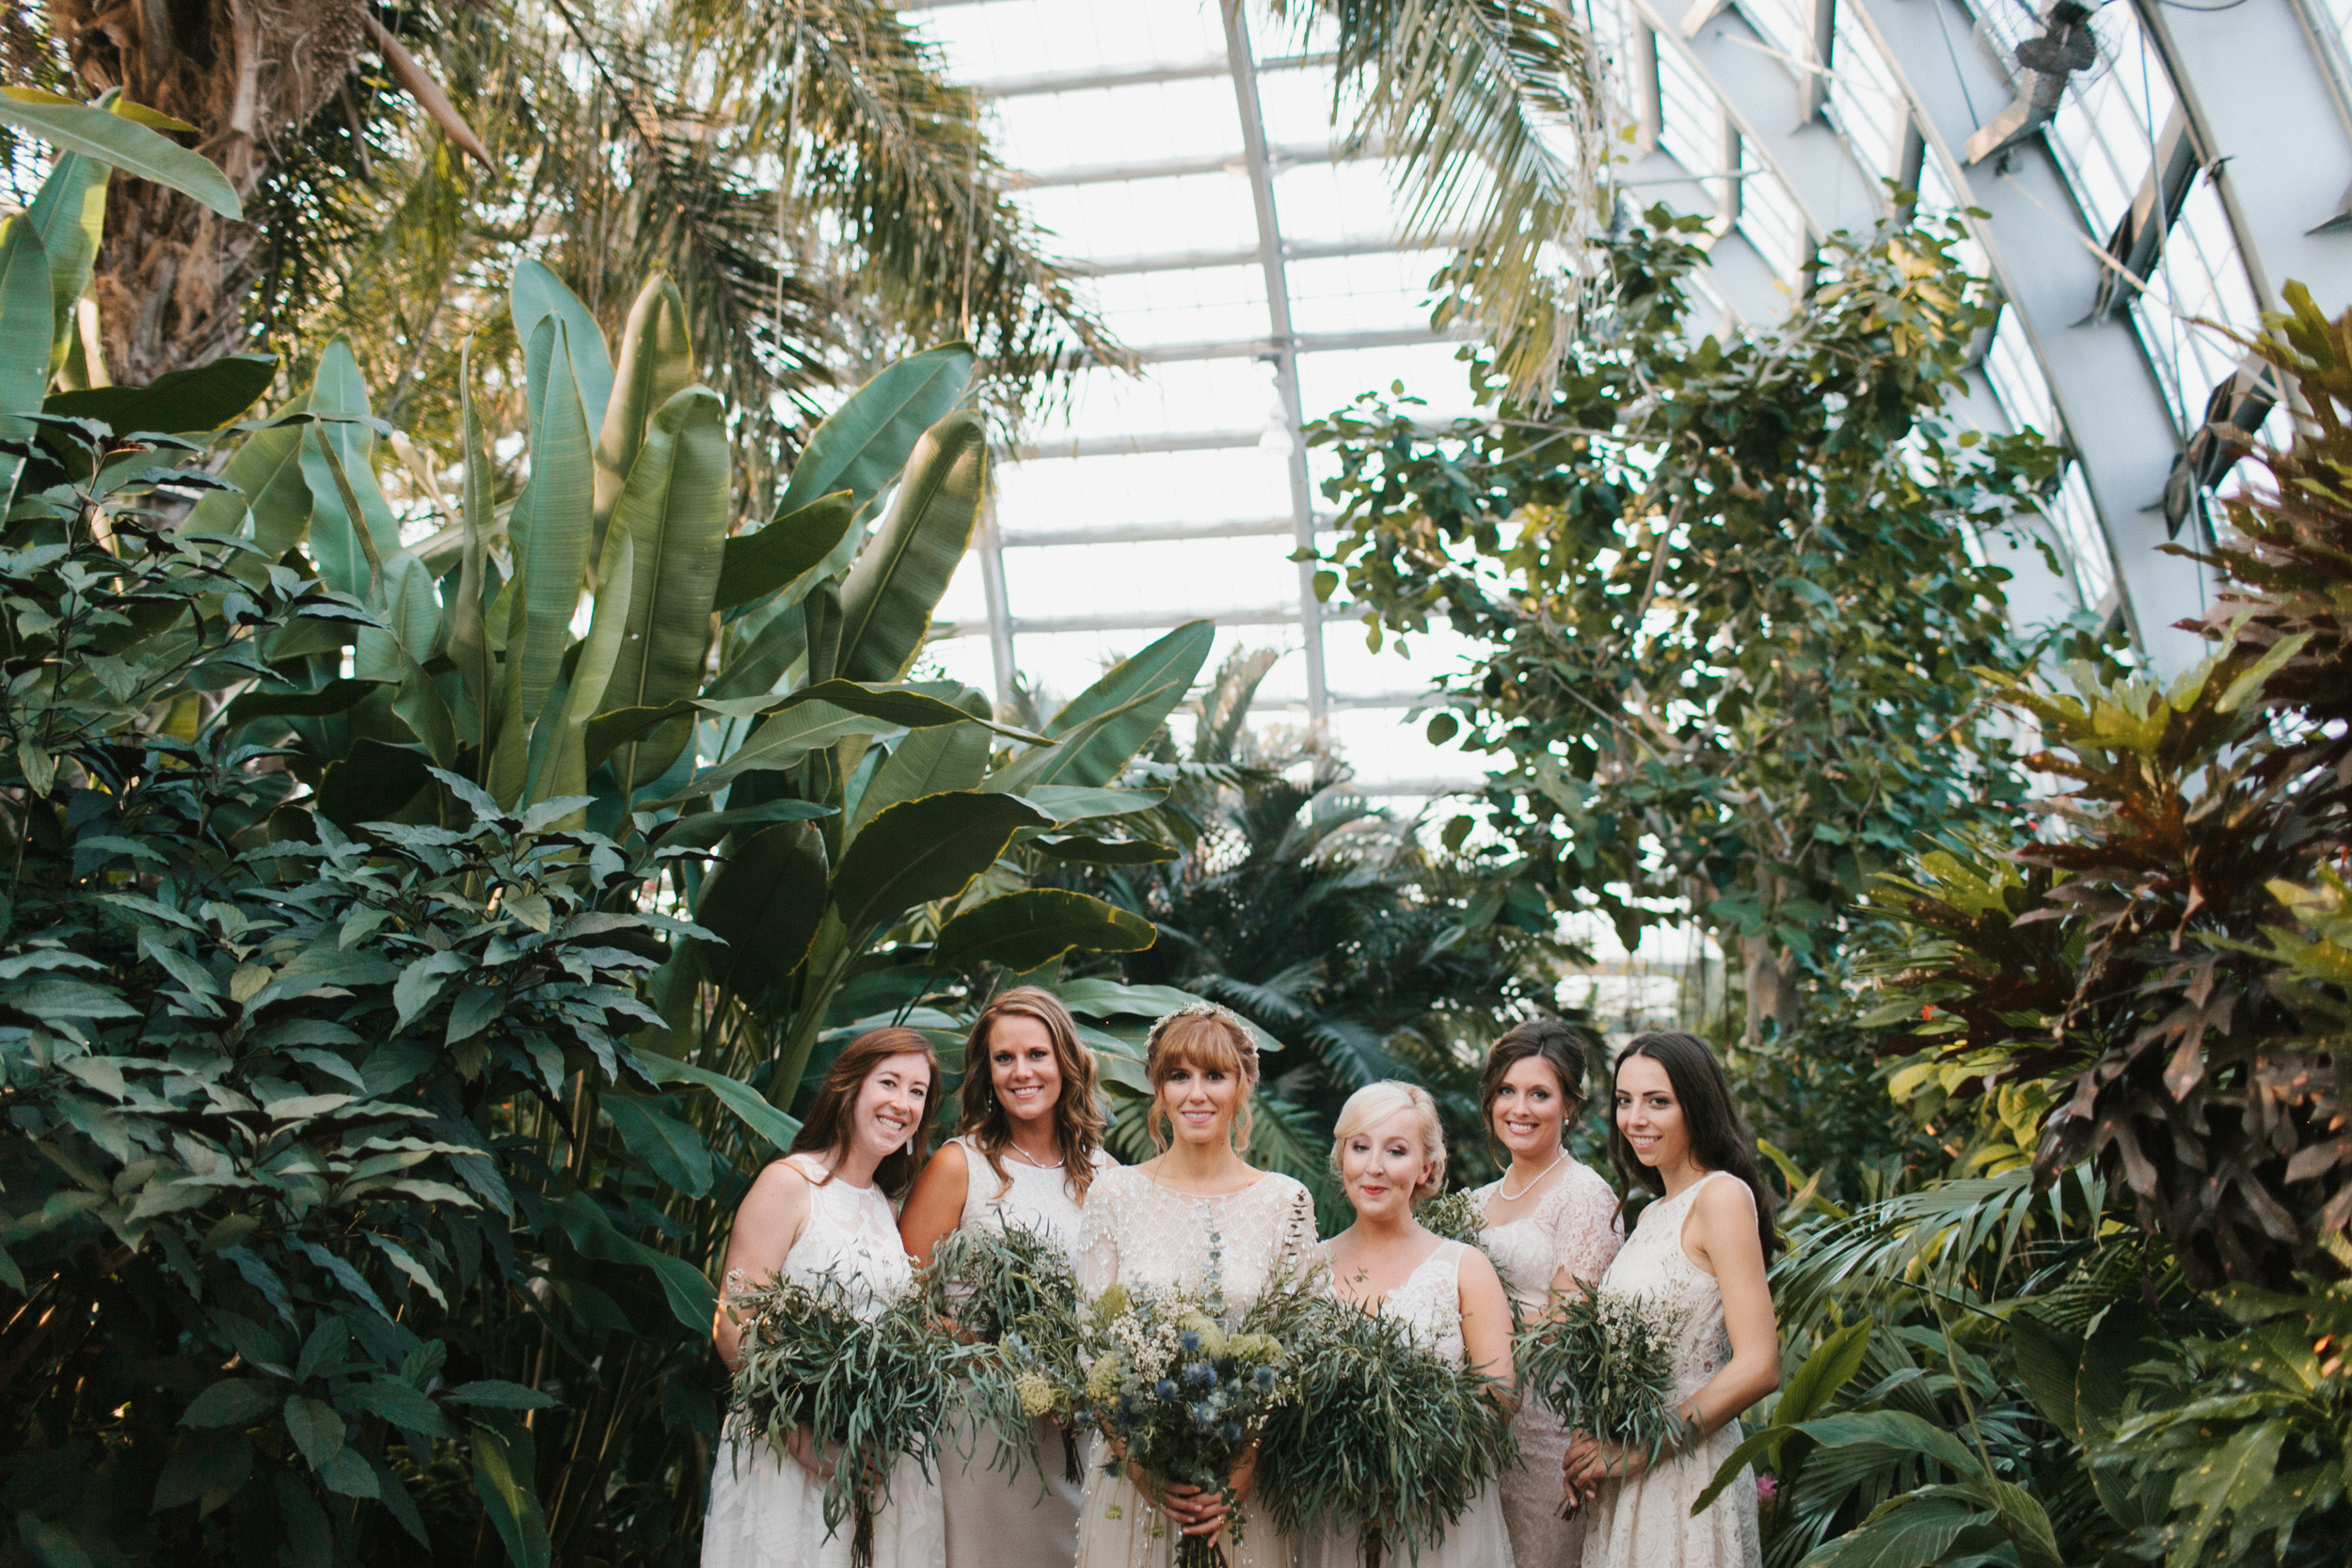 Chicago Wedding Garfield Park Conservatory Mae Stier Wedding Photographer Lifestyle Photography Midwest California-090.jpg